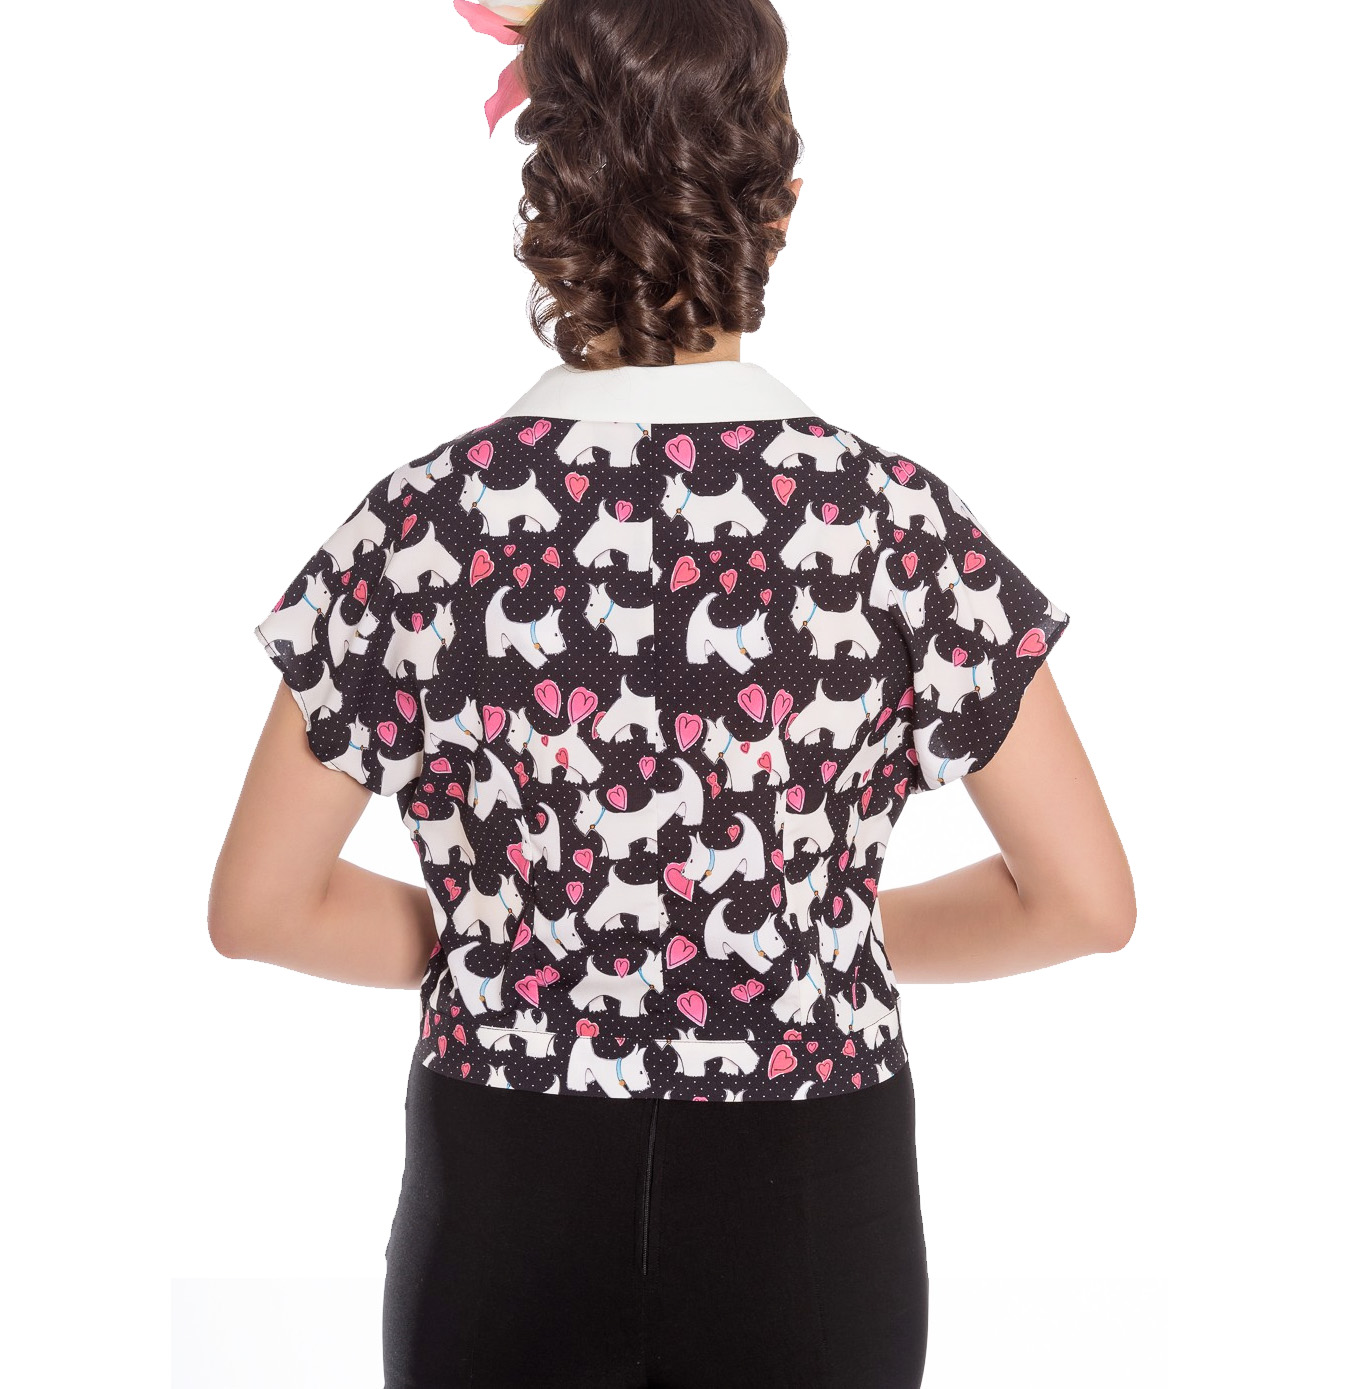 Hell-Bunny-50s-Retro-Top-Scottie-Dog-Heart-AGGY-Cropped-Blouse-Shirt-All-Sizes thumbnail 29